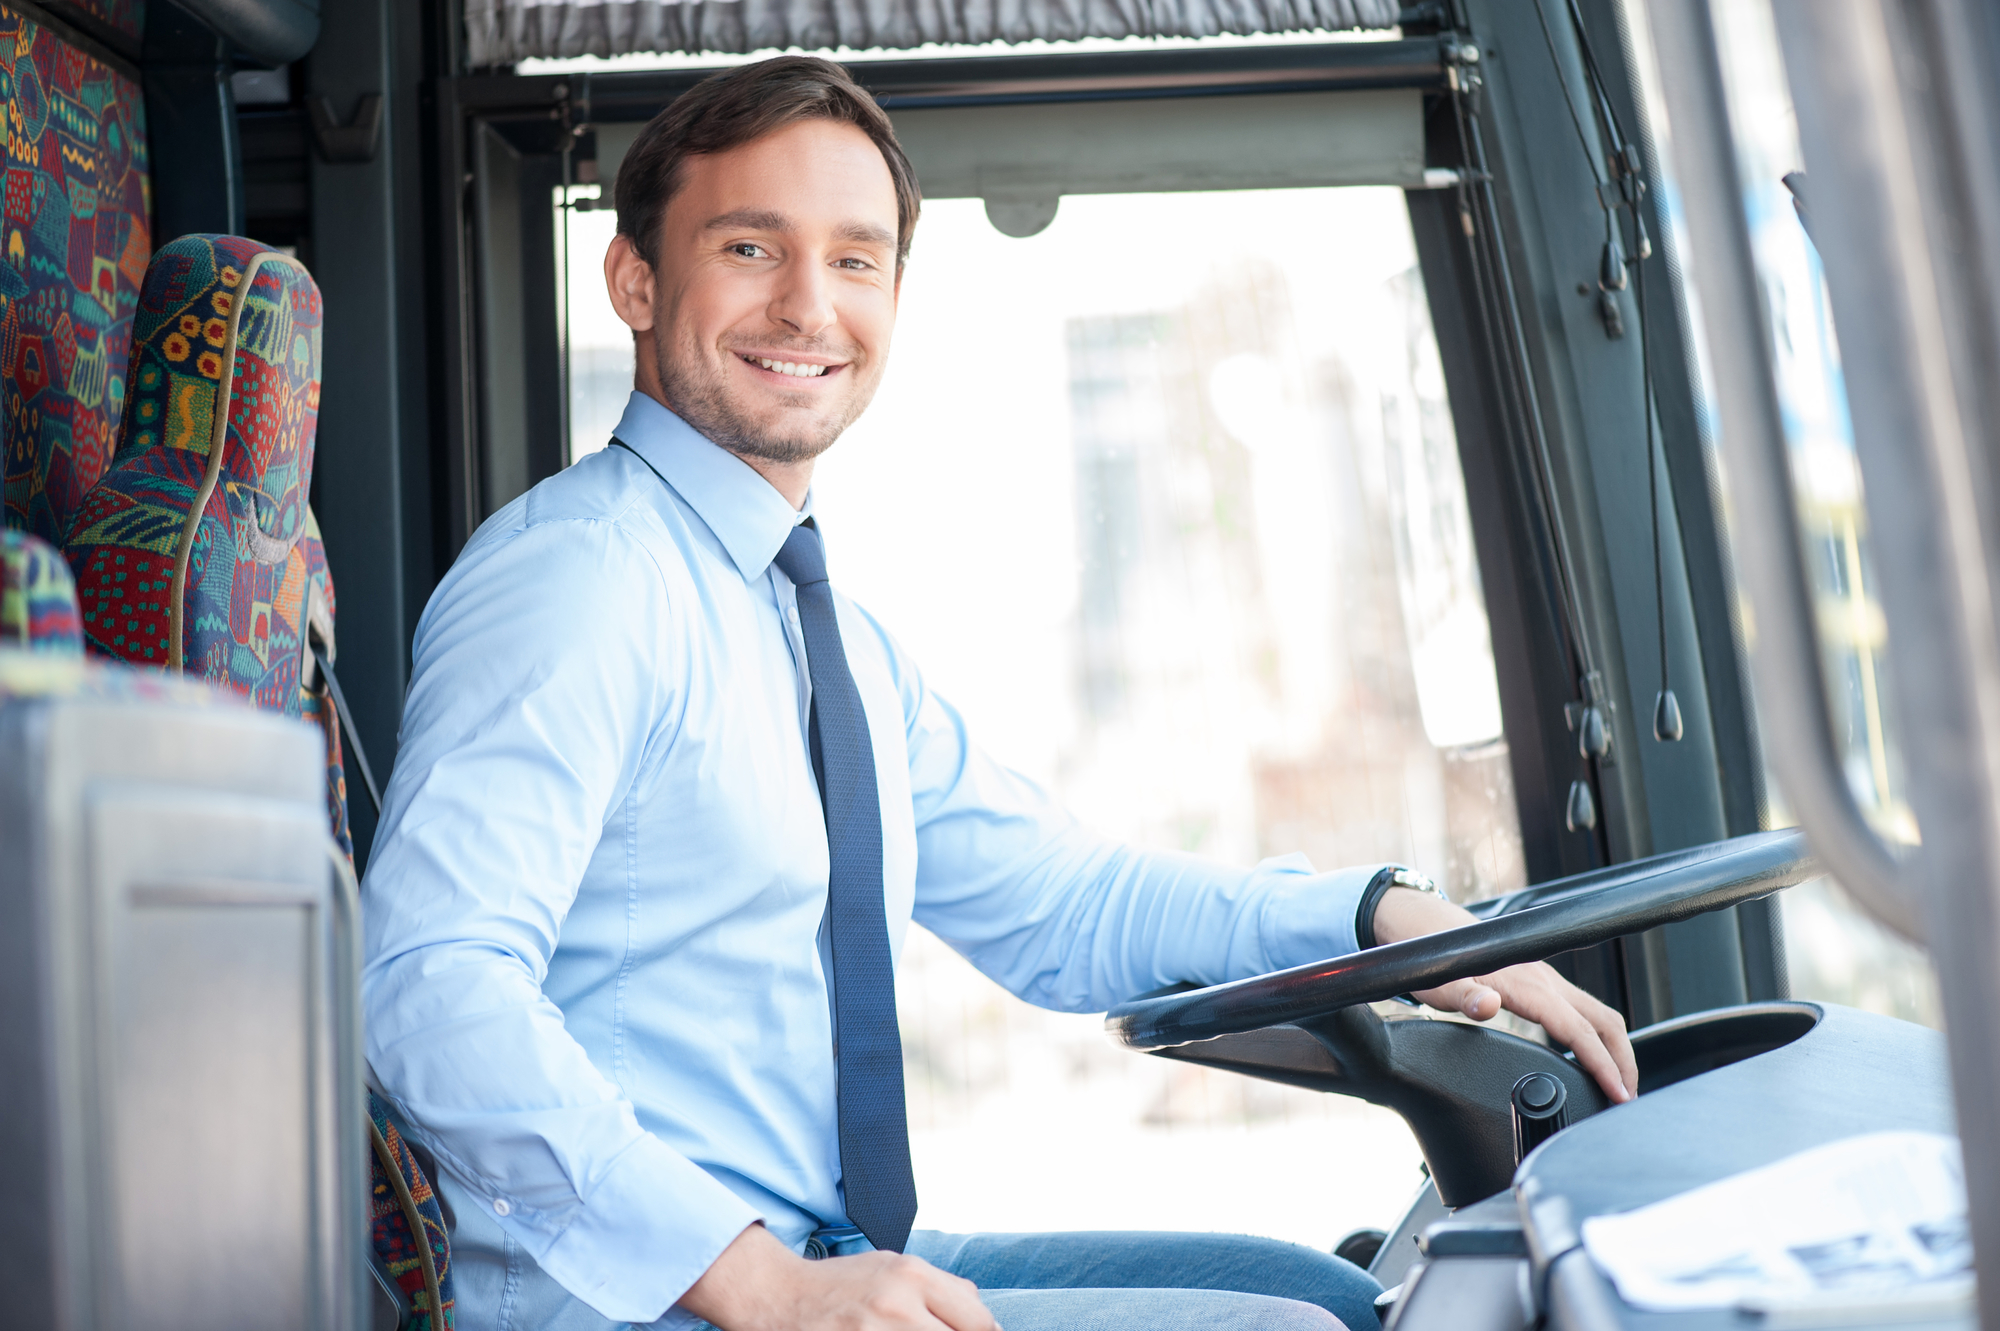 Handsome bus driver is sitting at steering wheel. He is looking at the camera and smiling